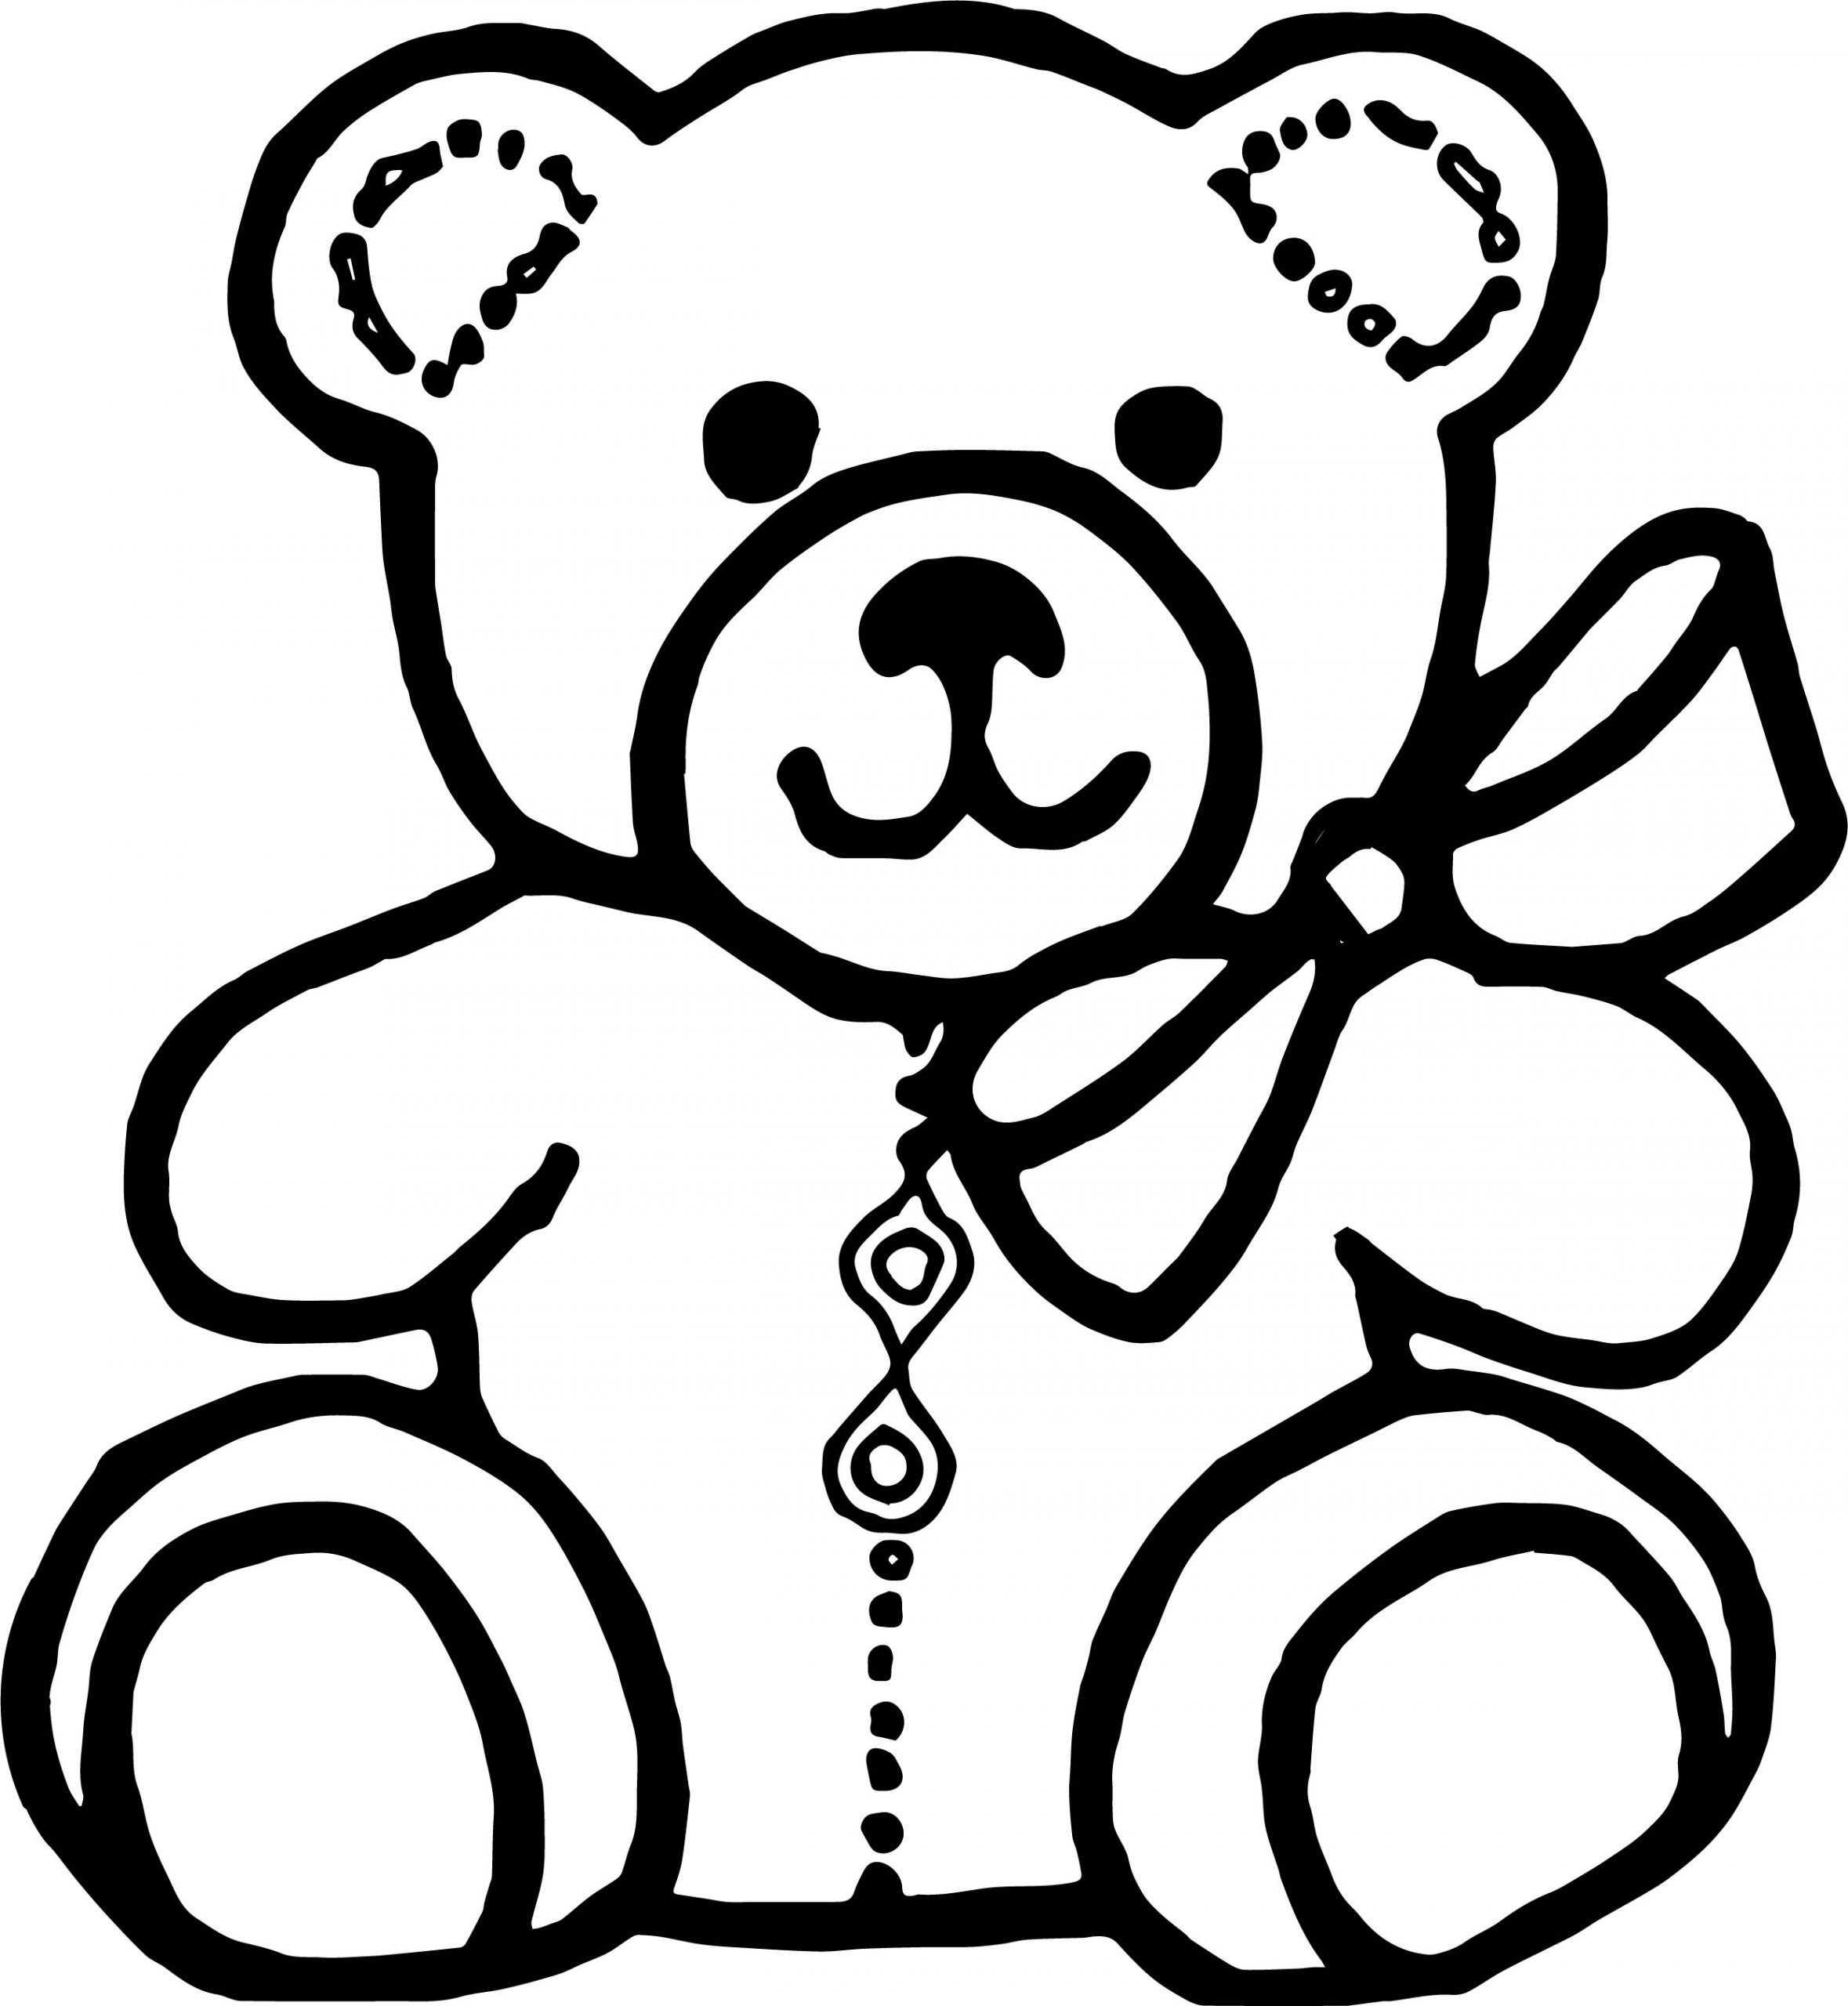 Magnificent Teddy Bear Outline Drawing in 2020 Teddy